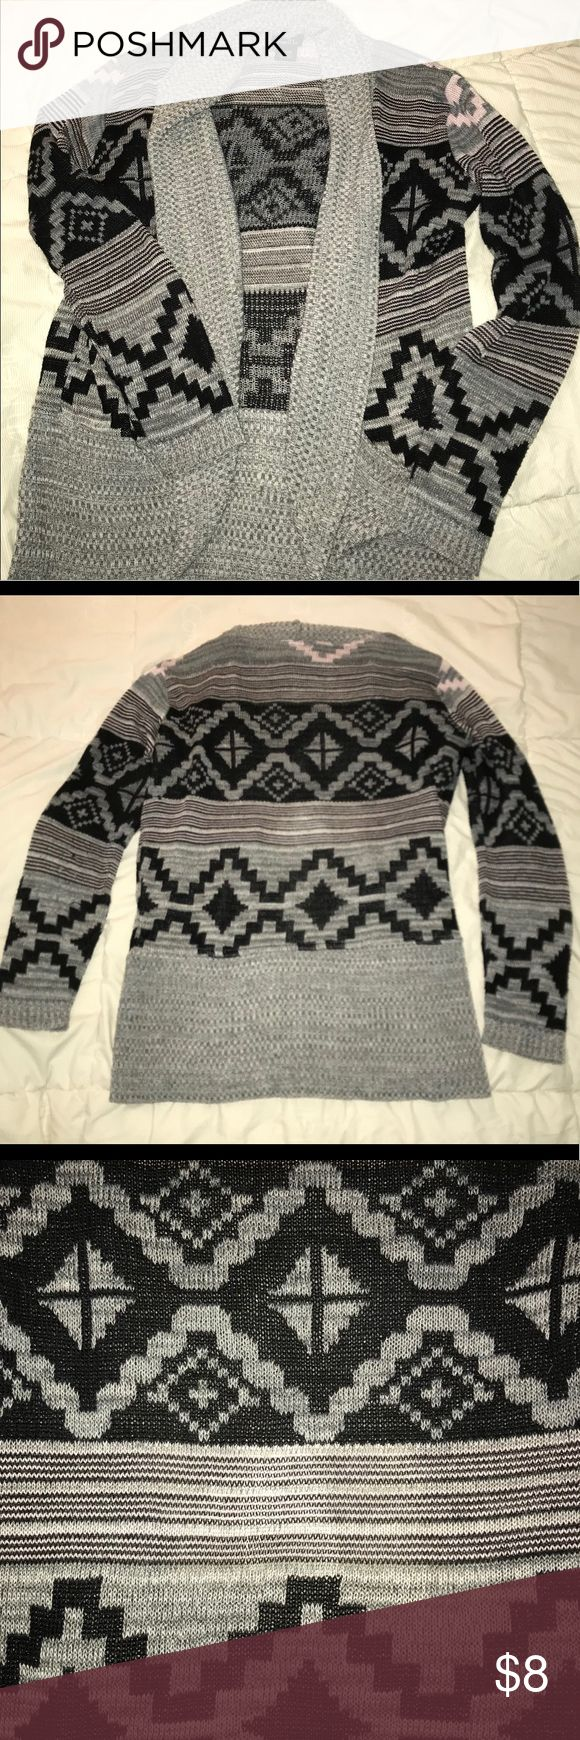 Tribal Print Cardigan Rue 21 Gray, black, and white tribal print cardigan, with hints of pink between design lines. Purchased from Rue 21. Size medium. Good condition! Rue 21 Sweaters Cardigans